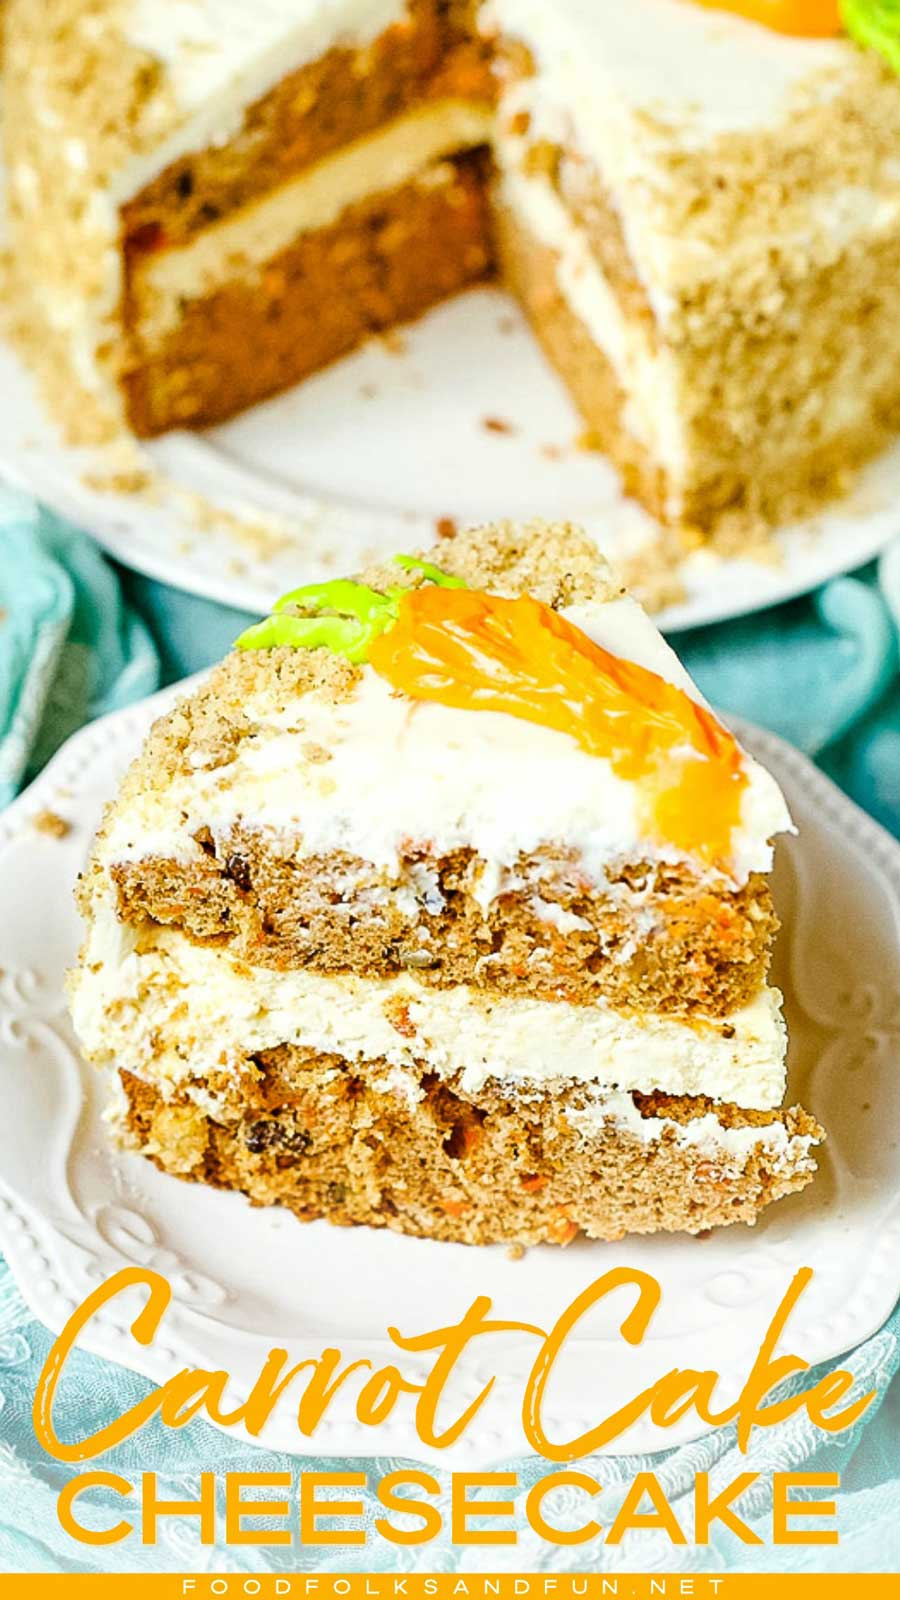 Carrot Cake Cheesecake Cake is the perfect Spring dessert. It's comprised of two layers of delicious carrot cake, a layer of cheesecake, and smothered in the best cream cheese frosting to make one glorious cake! via @foodfolksandfun